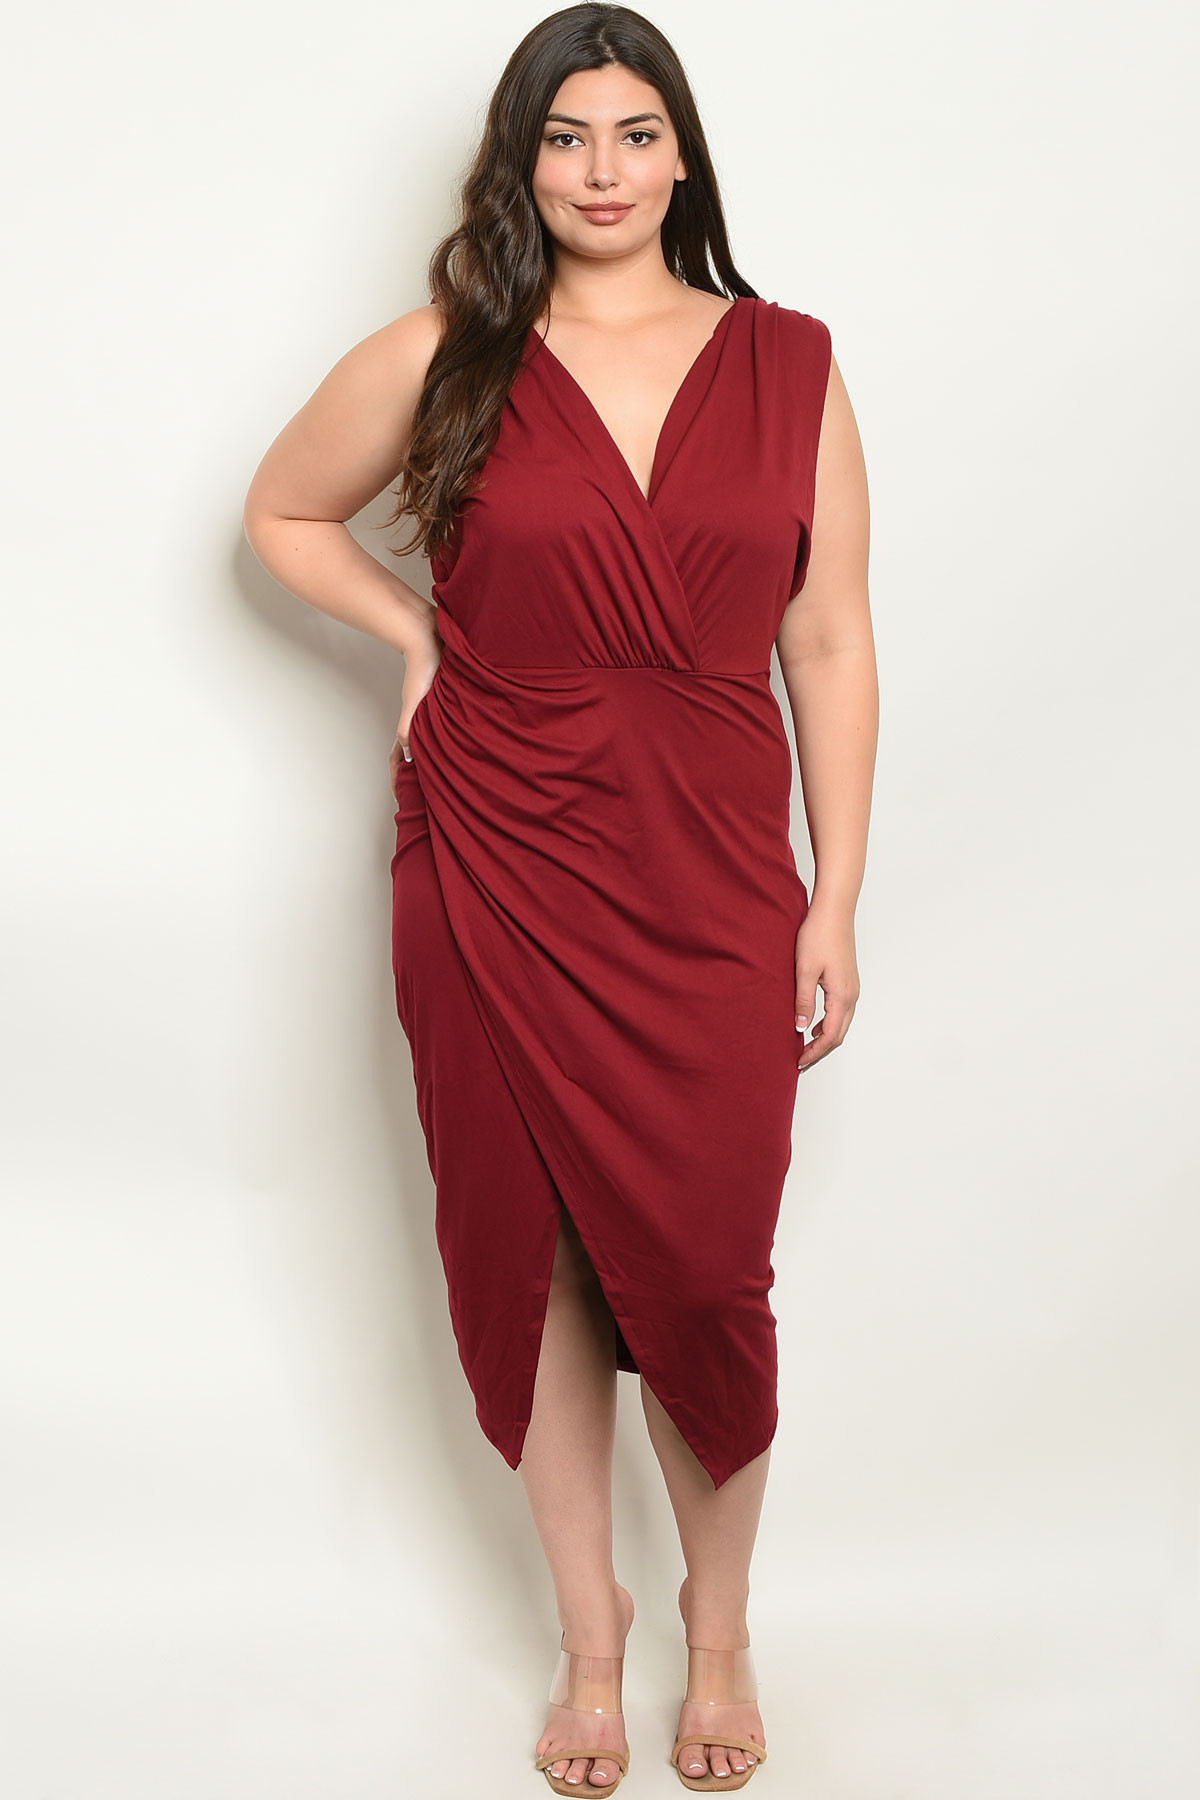 S13-11-2-D7997X BURGUNDY PLUS SIZE DRESS 1-1-2-2